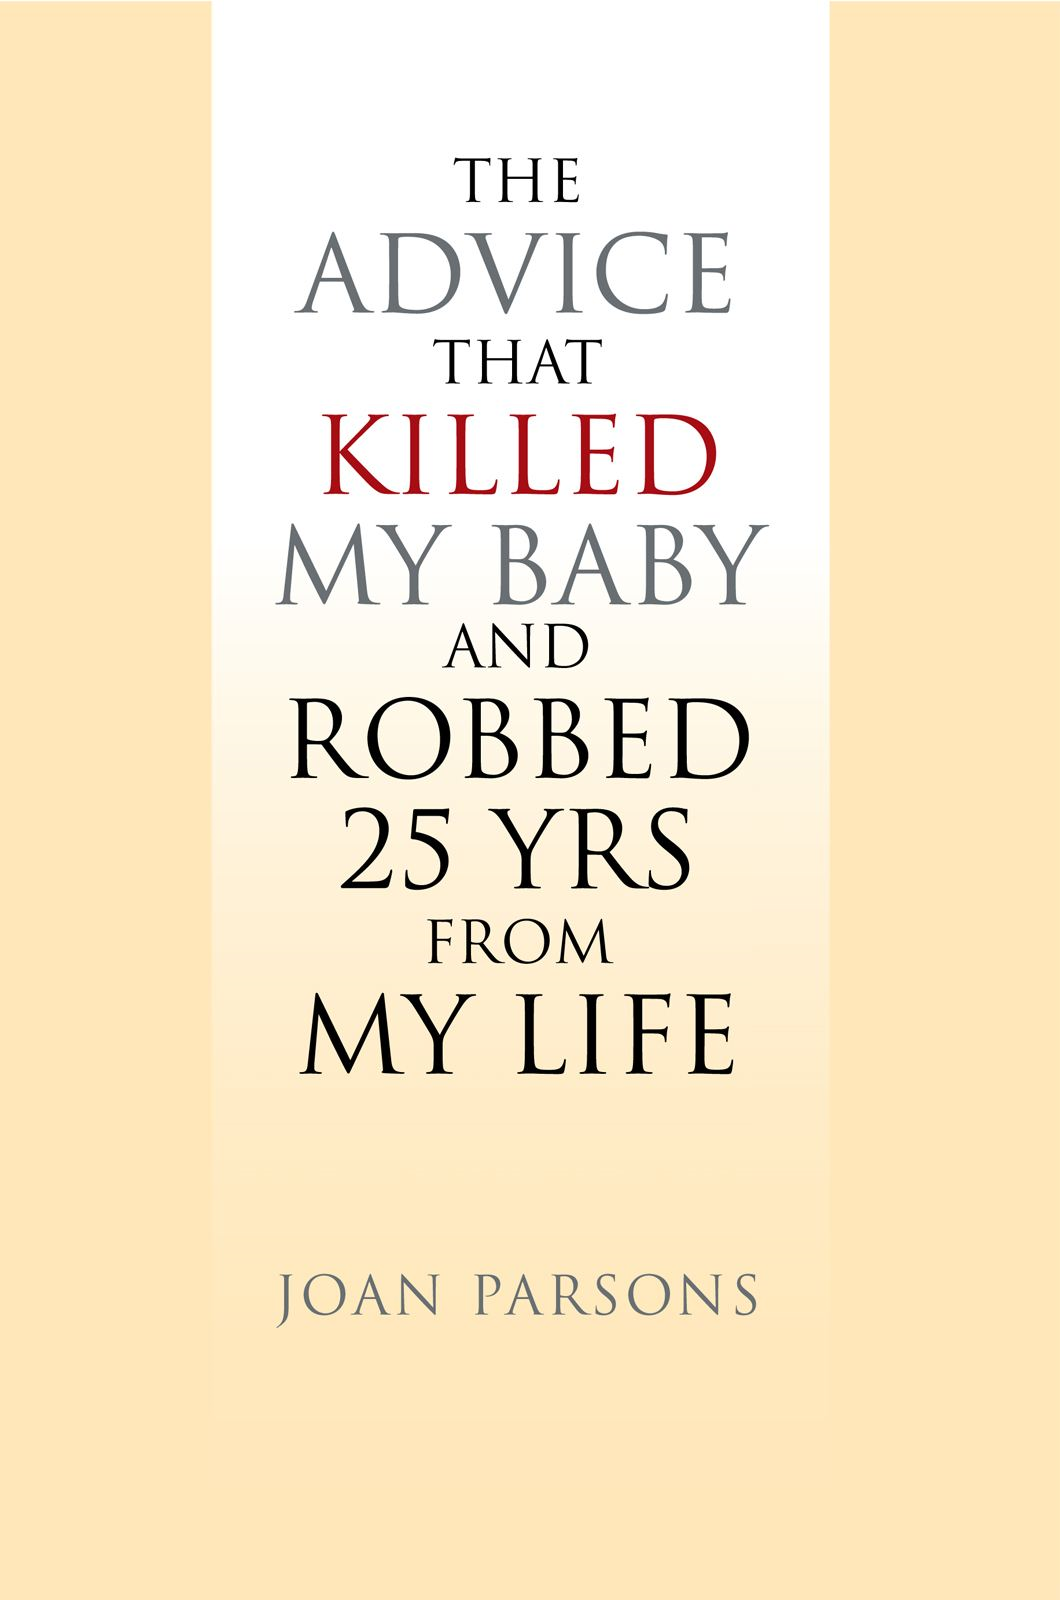 The Advice that Killed my Baby and Robbed 25 yrs from my Life By: Joan Parsons